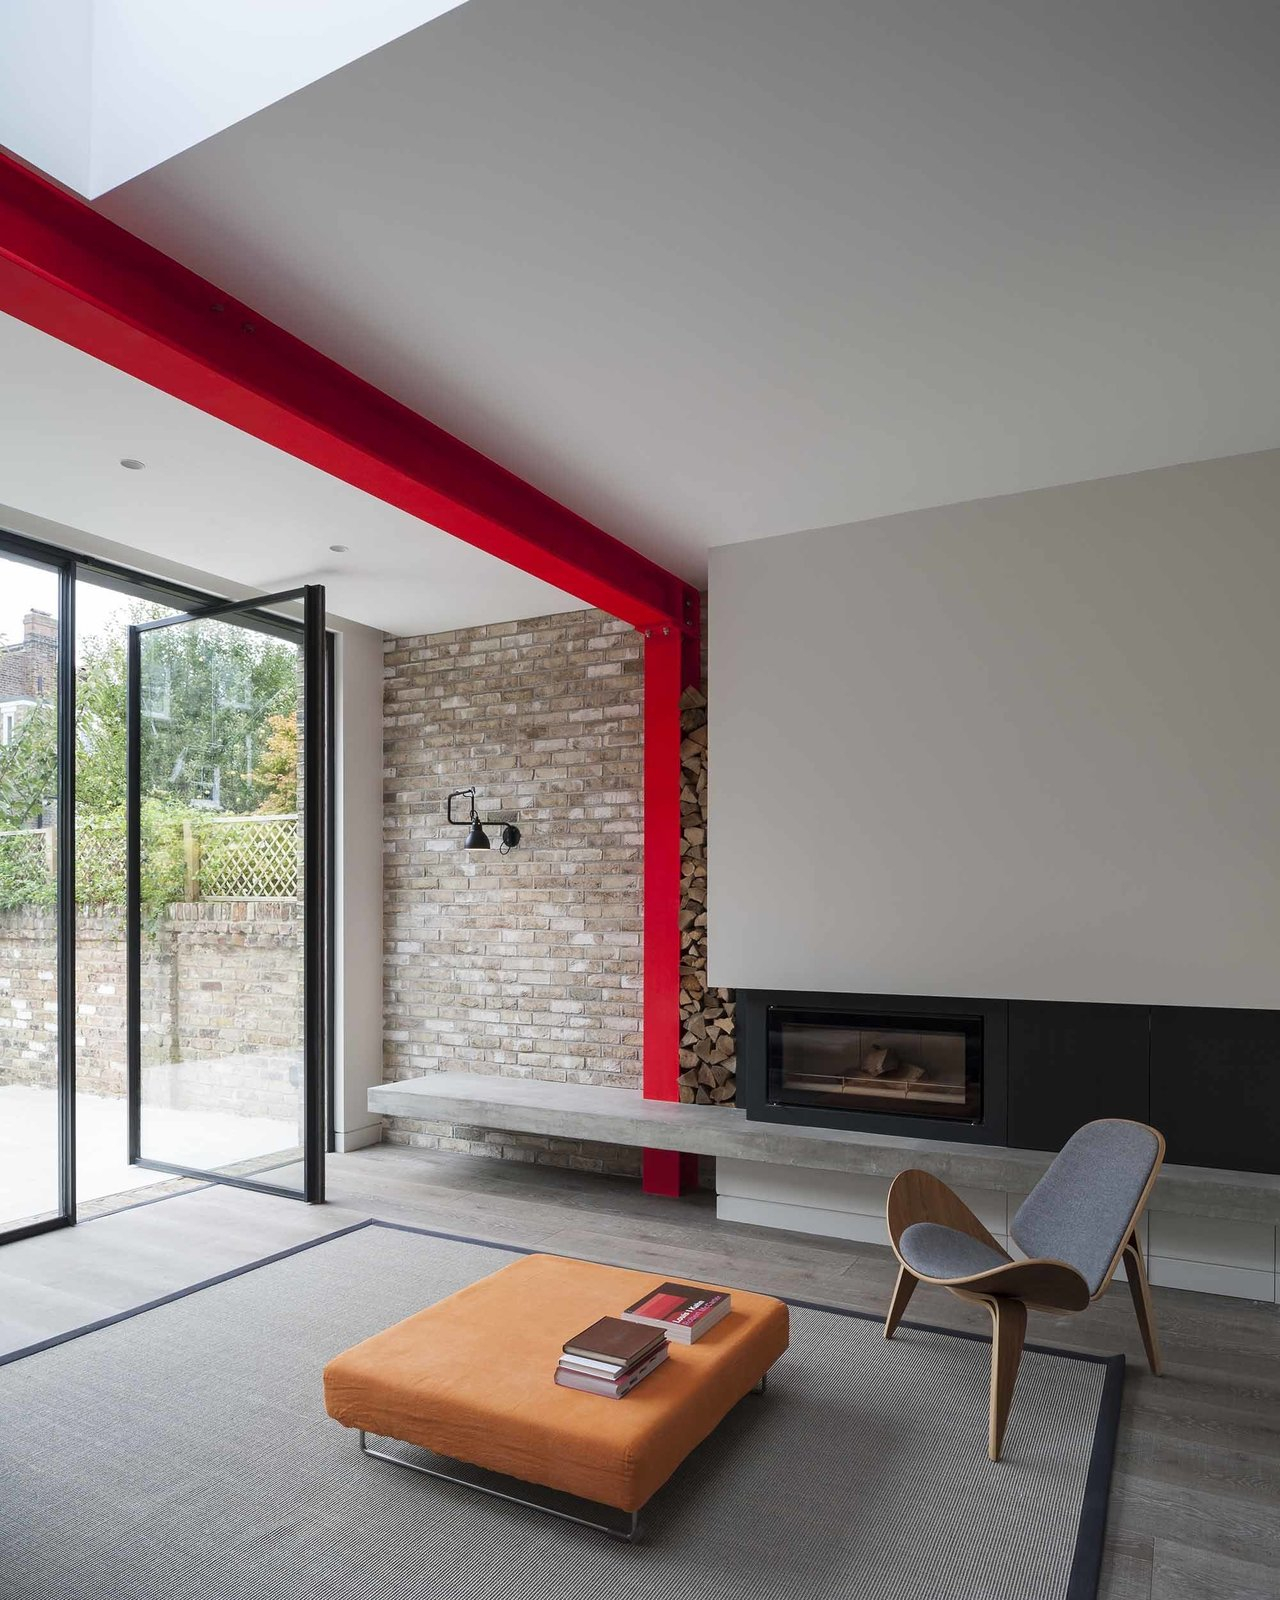 A Hans Wegner Shell chair by Carl Hansen & Søn outfits the living room, which is defined by a steel beam painted sharp red.  97+ Modern Fireplace Ideas by Dwell from A London Town House Renovation Beaming with Personality